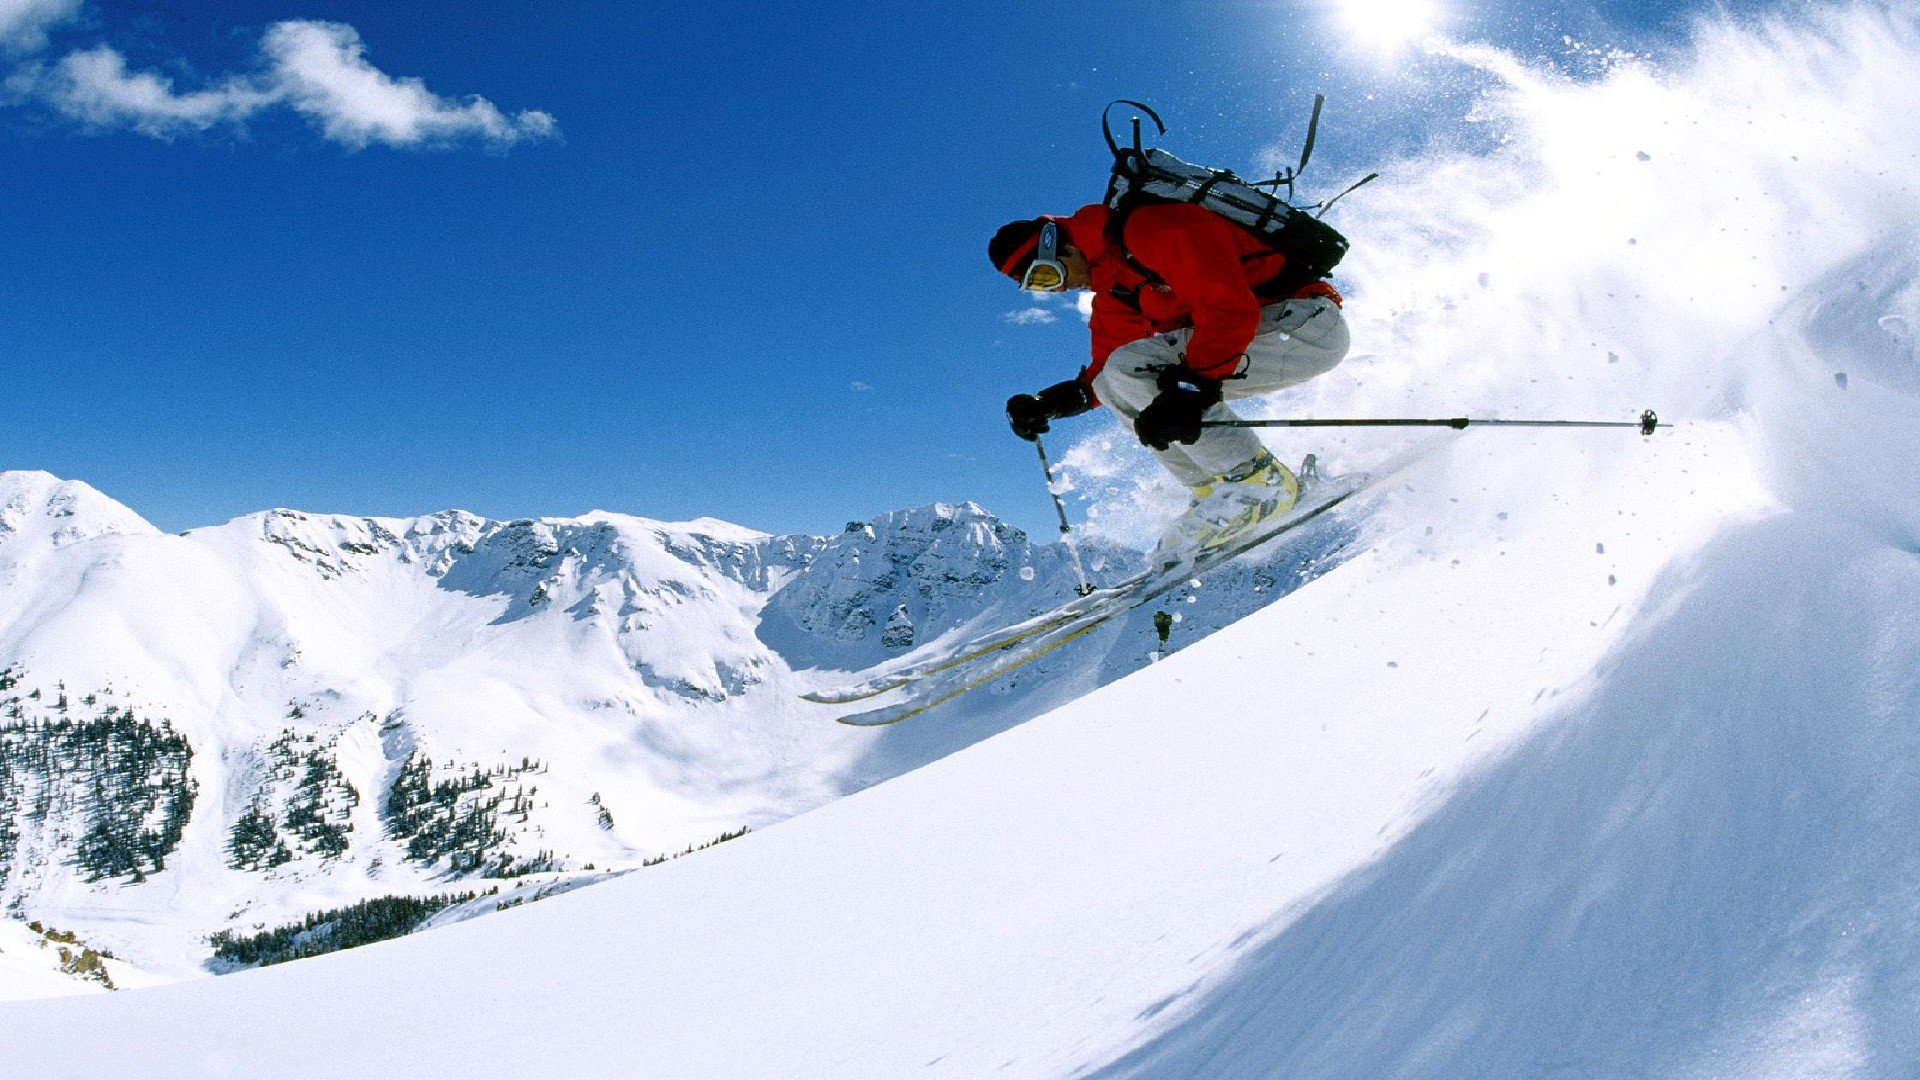 SKIING winter snow ski mountains wallpaper | 1920x1080 ...